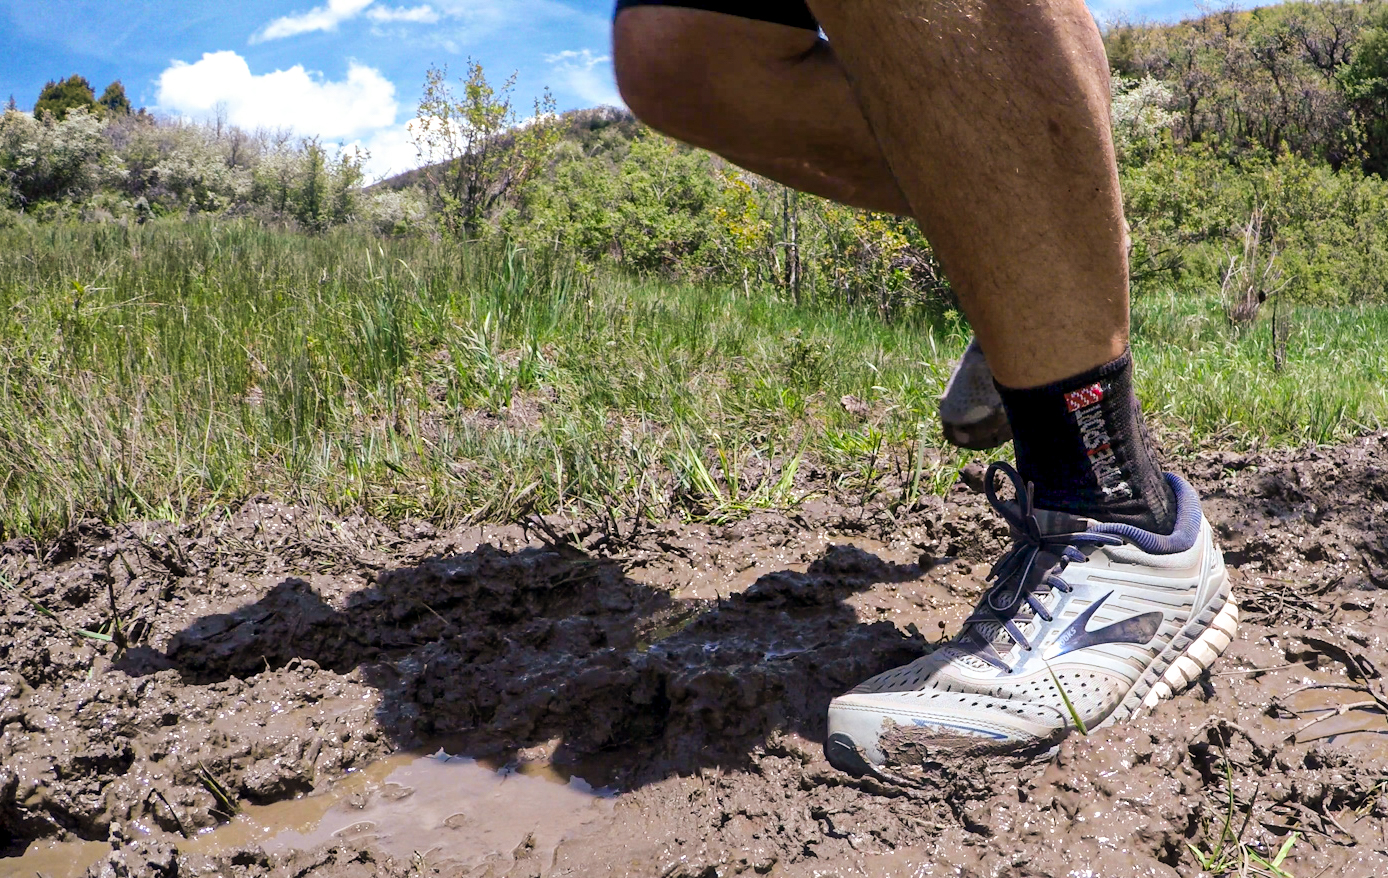 5 Things Every Trail Runner Should Know - Leave No Trace